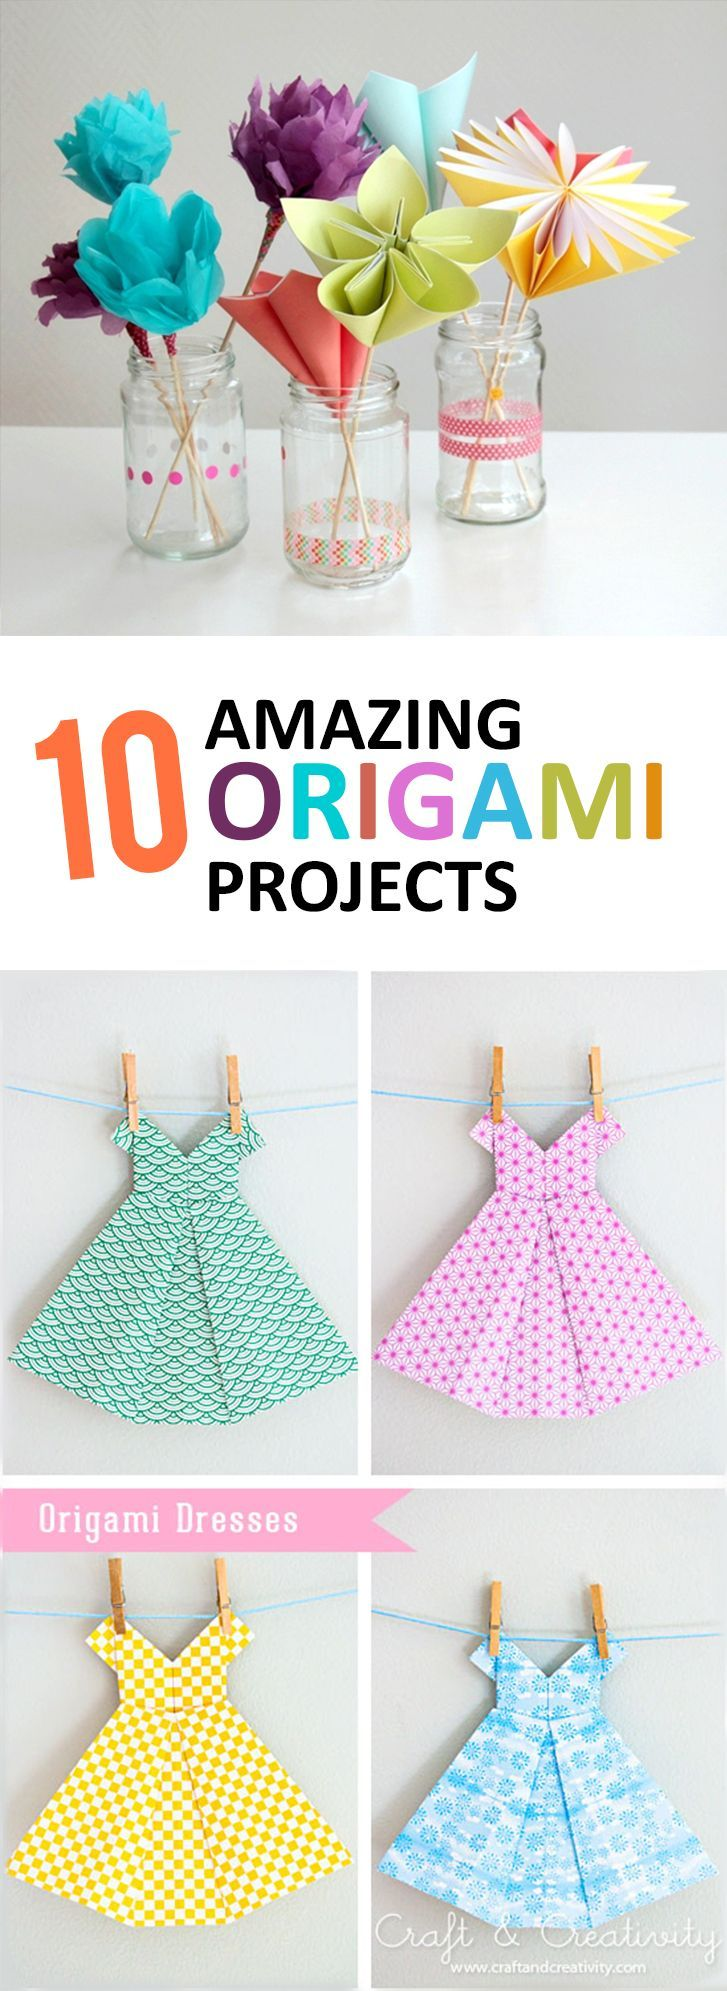 Love the origami dresses!